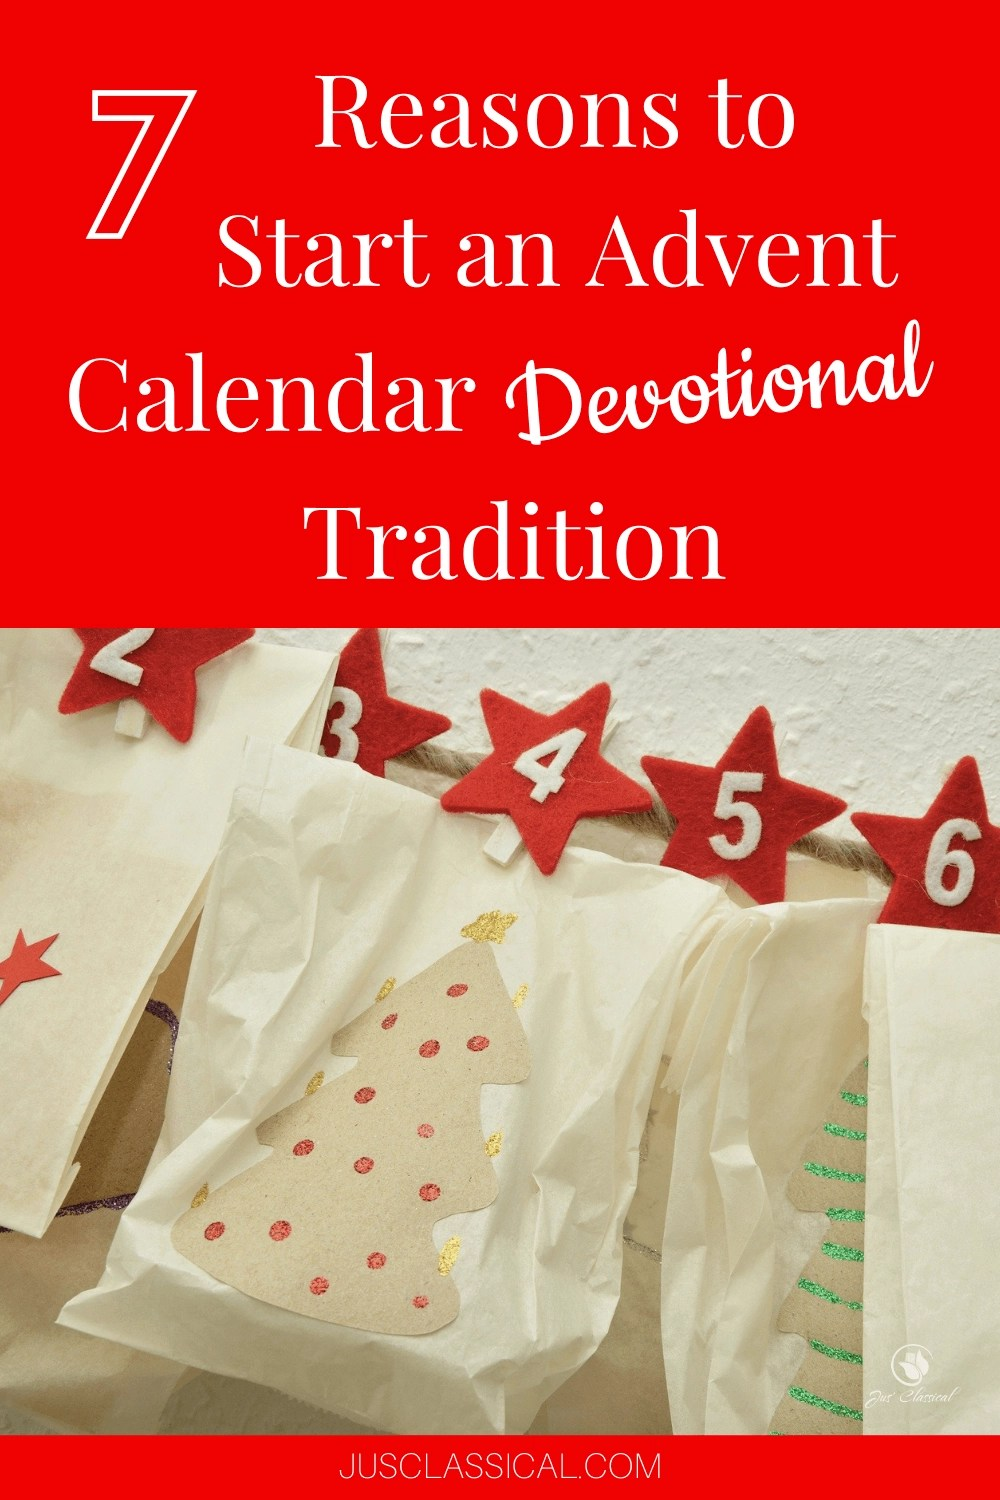 Picture of white numbers on red stars and clipped to bags of an Advent calendar with title 7 Reasons to Start an Advent Calendar Devotional Tradition